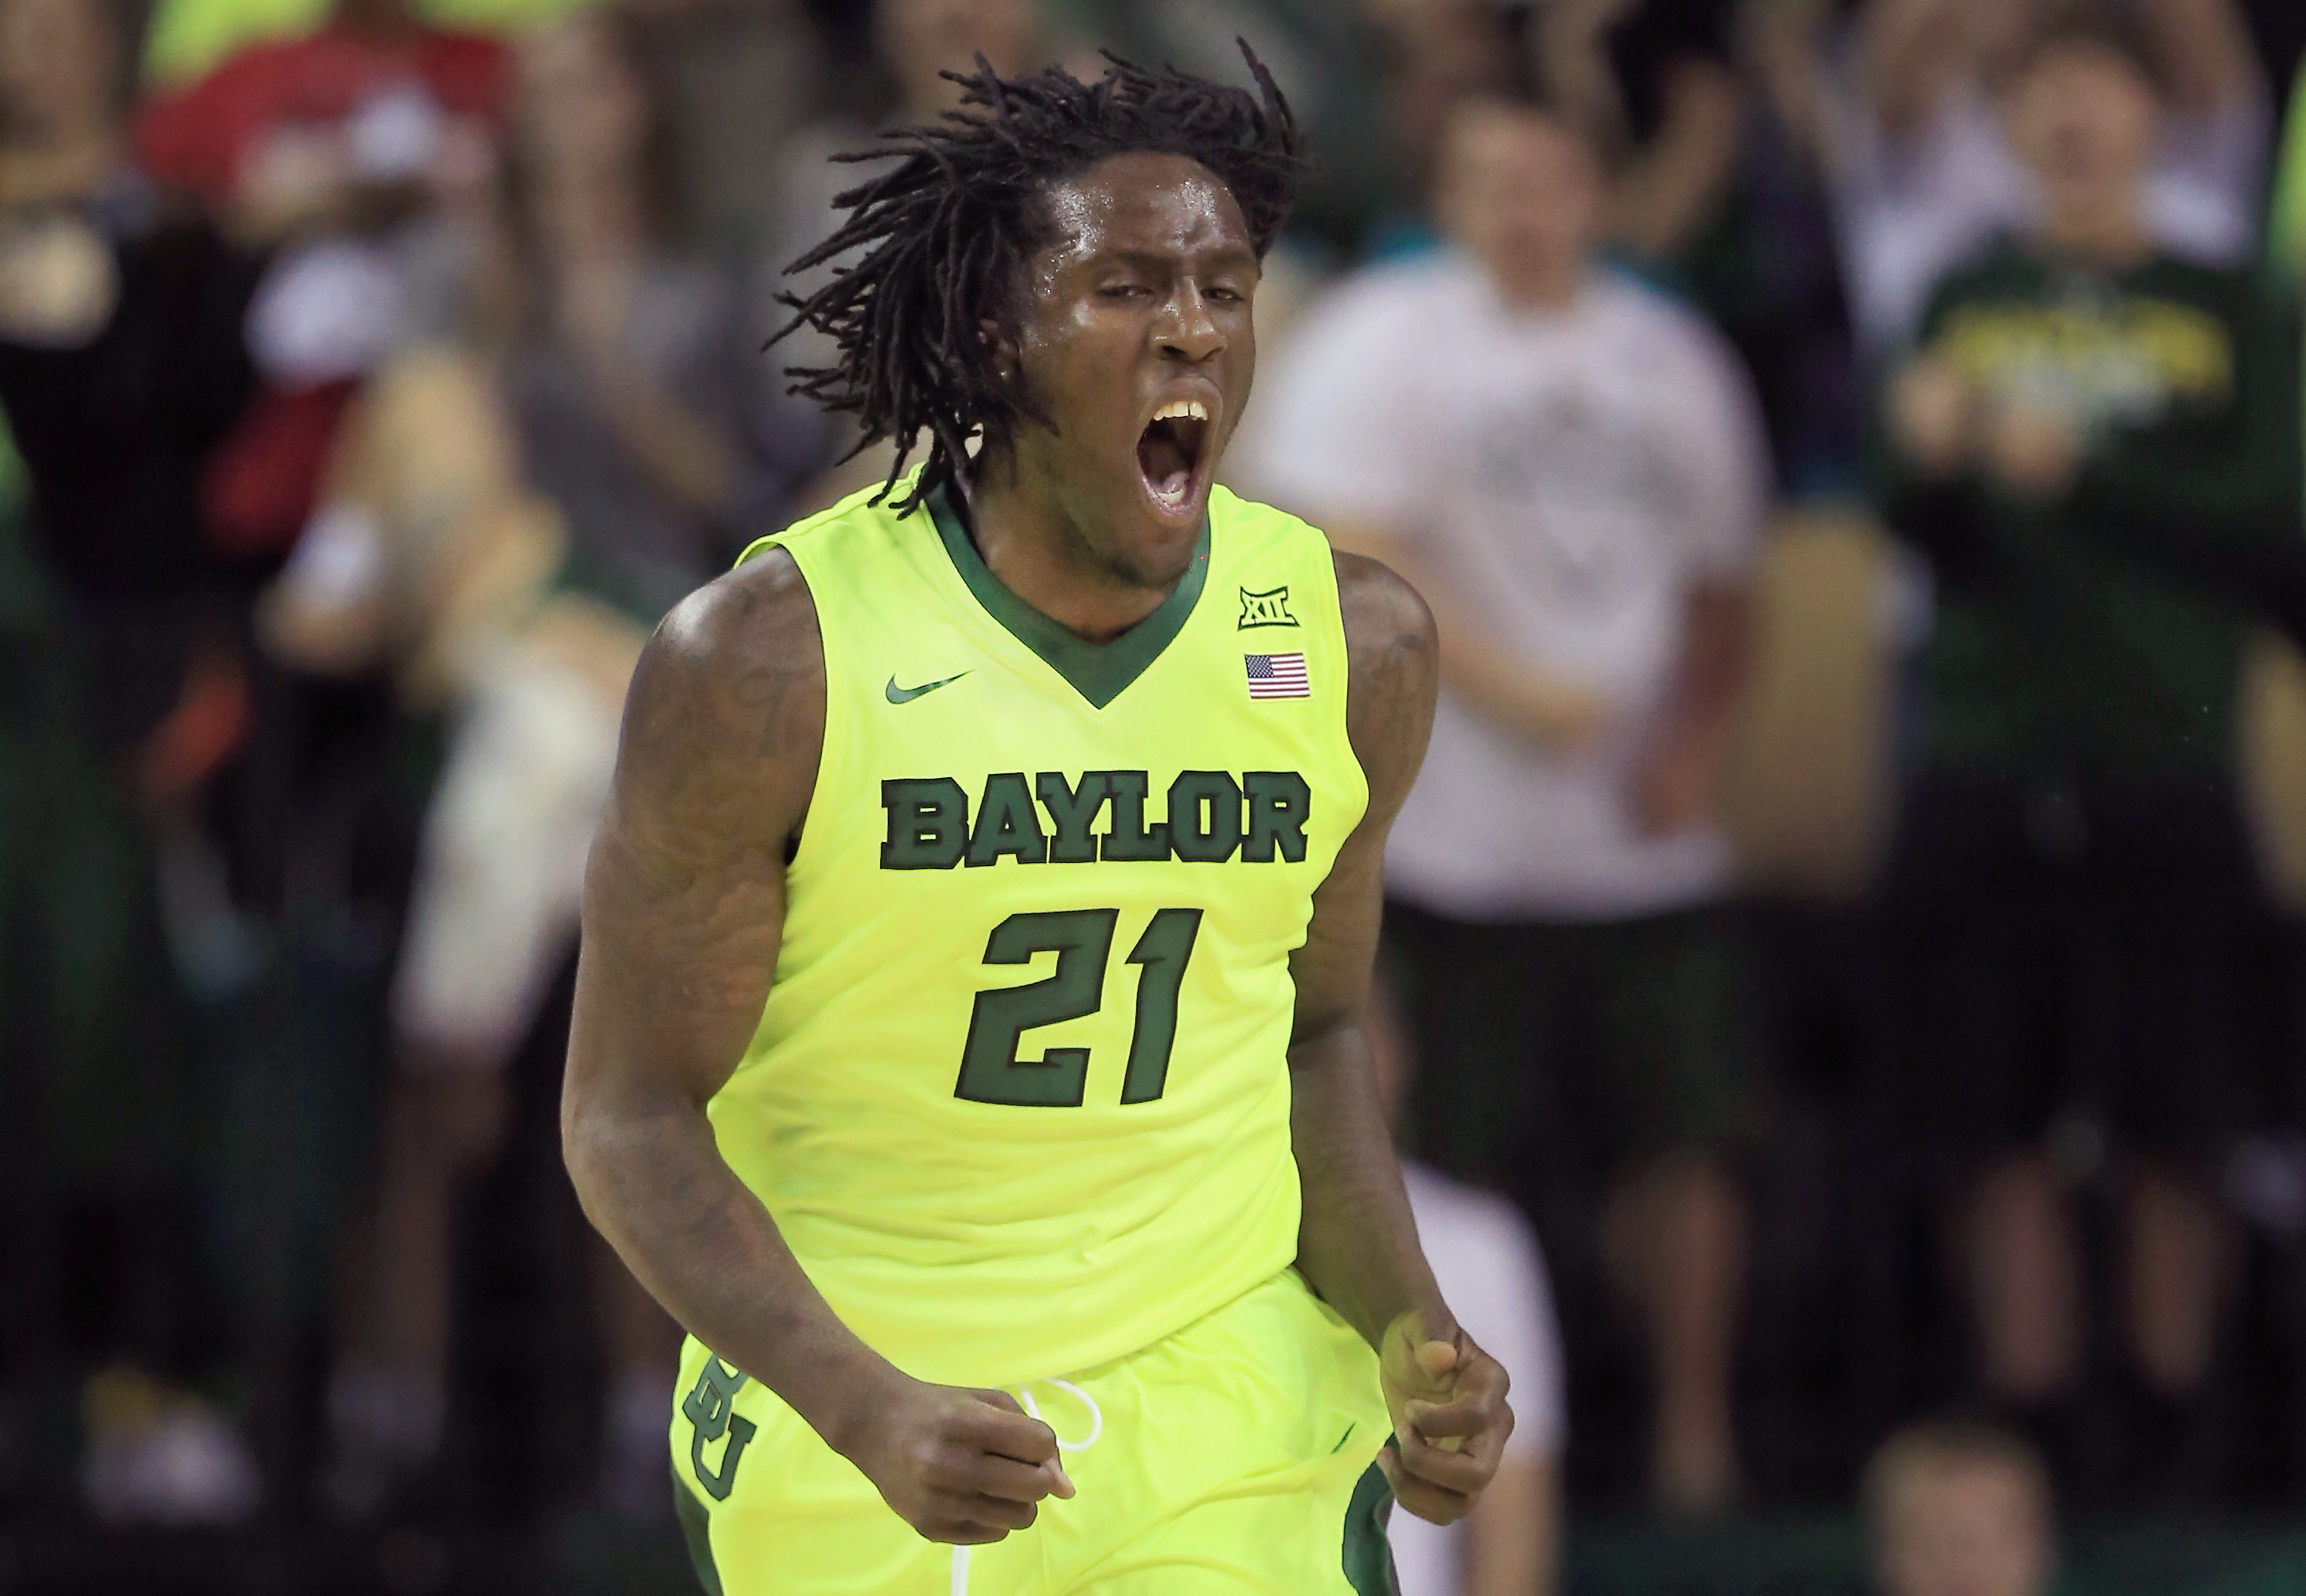 Baylor, Yale, TV Channel,CBS, TNT, Trutv,  TBS, Start, Watch, How to Watch, Live Stream, Tipoff, App, Mobile, College Basketball, Basketball